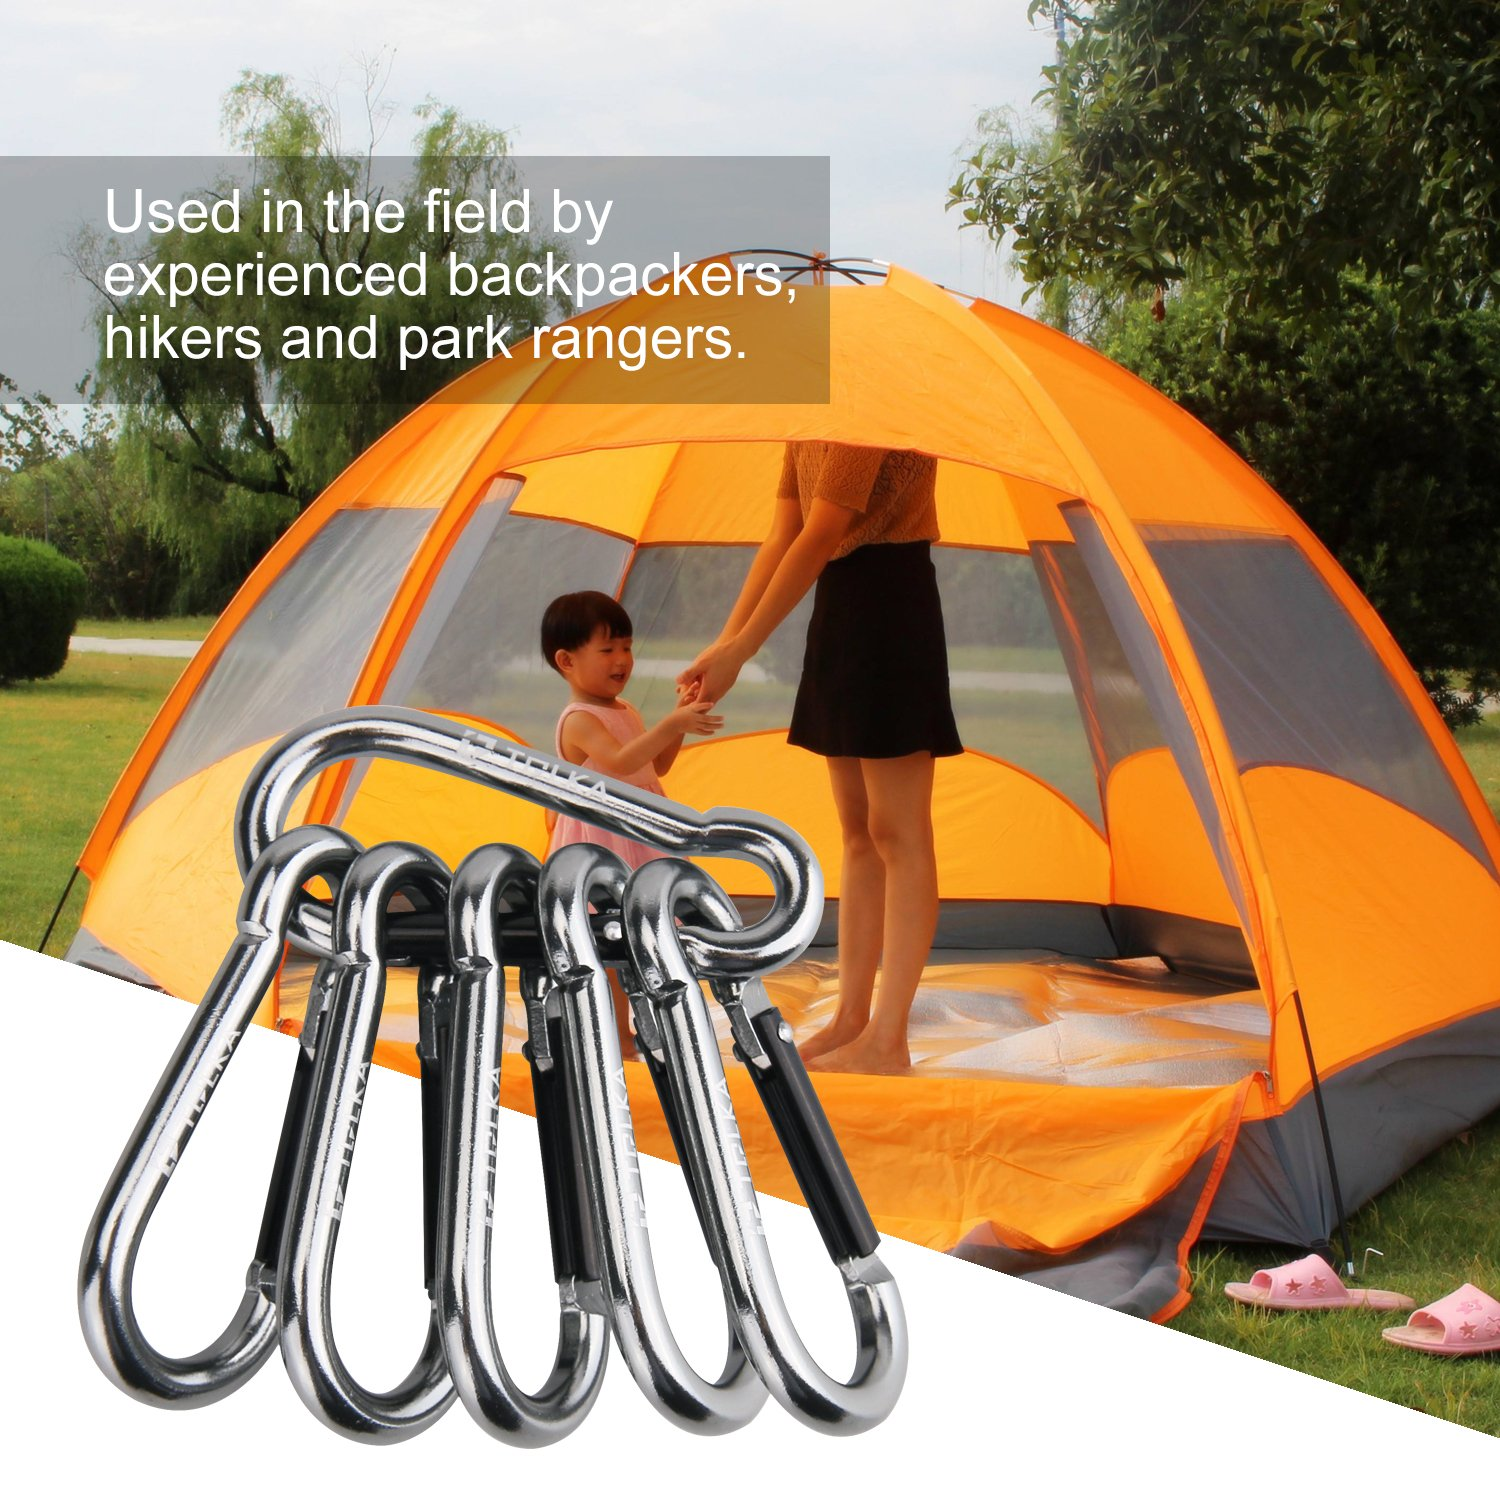 Light Durable Round Shape Nonlocking 3 Caribeaner Hook Buckle for Outdoor Camping Key Chain Ring Hiking Fishing TOLKA 6 Pack Aluminum Carabiner Keychain Clip with Keyring